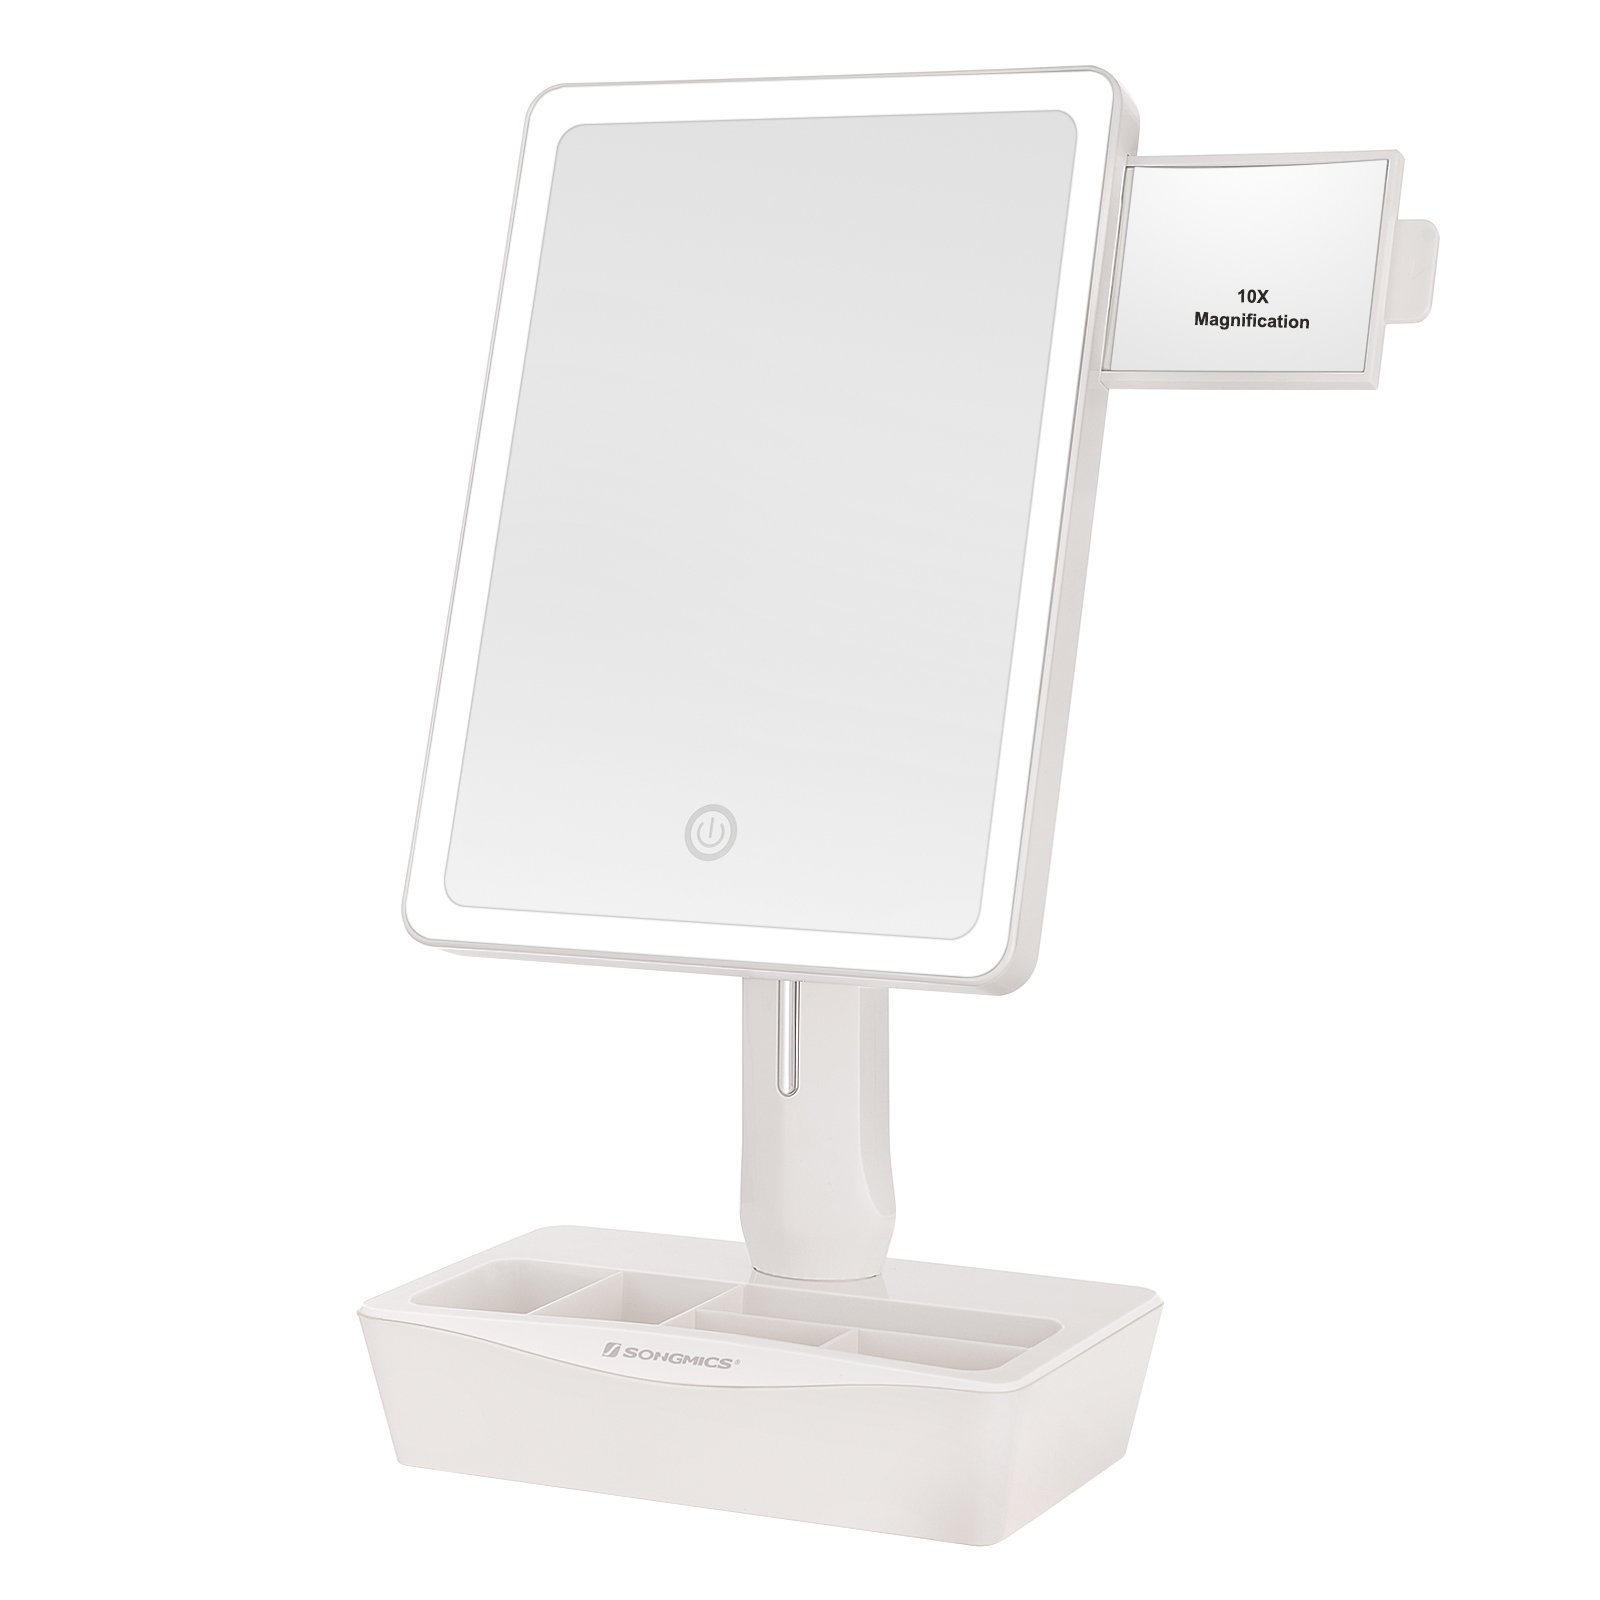 SONGMICS Large LED Lighted Makeup Mirror with Small 10x Magnification Vanity Mirror, Auto off Dimmable Light and Dual Power, Adjustable Stand with Cosmetic Organizer White UBBM10W by SONGMICS